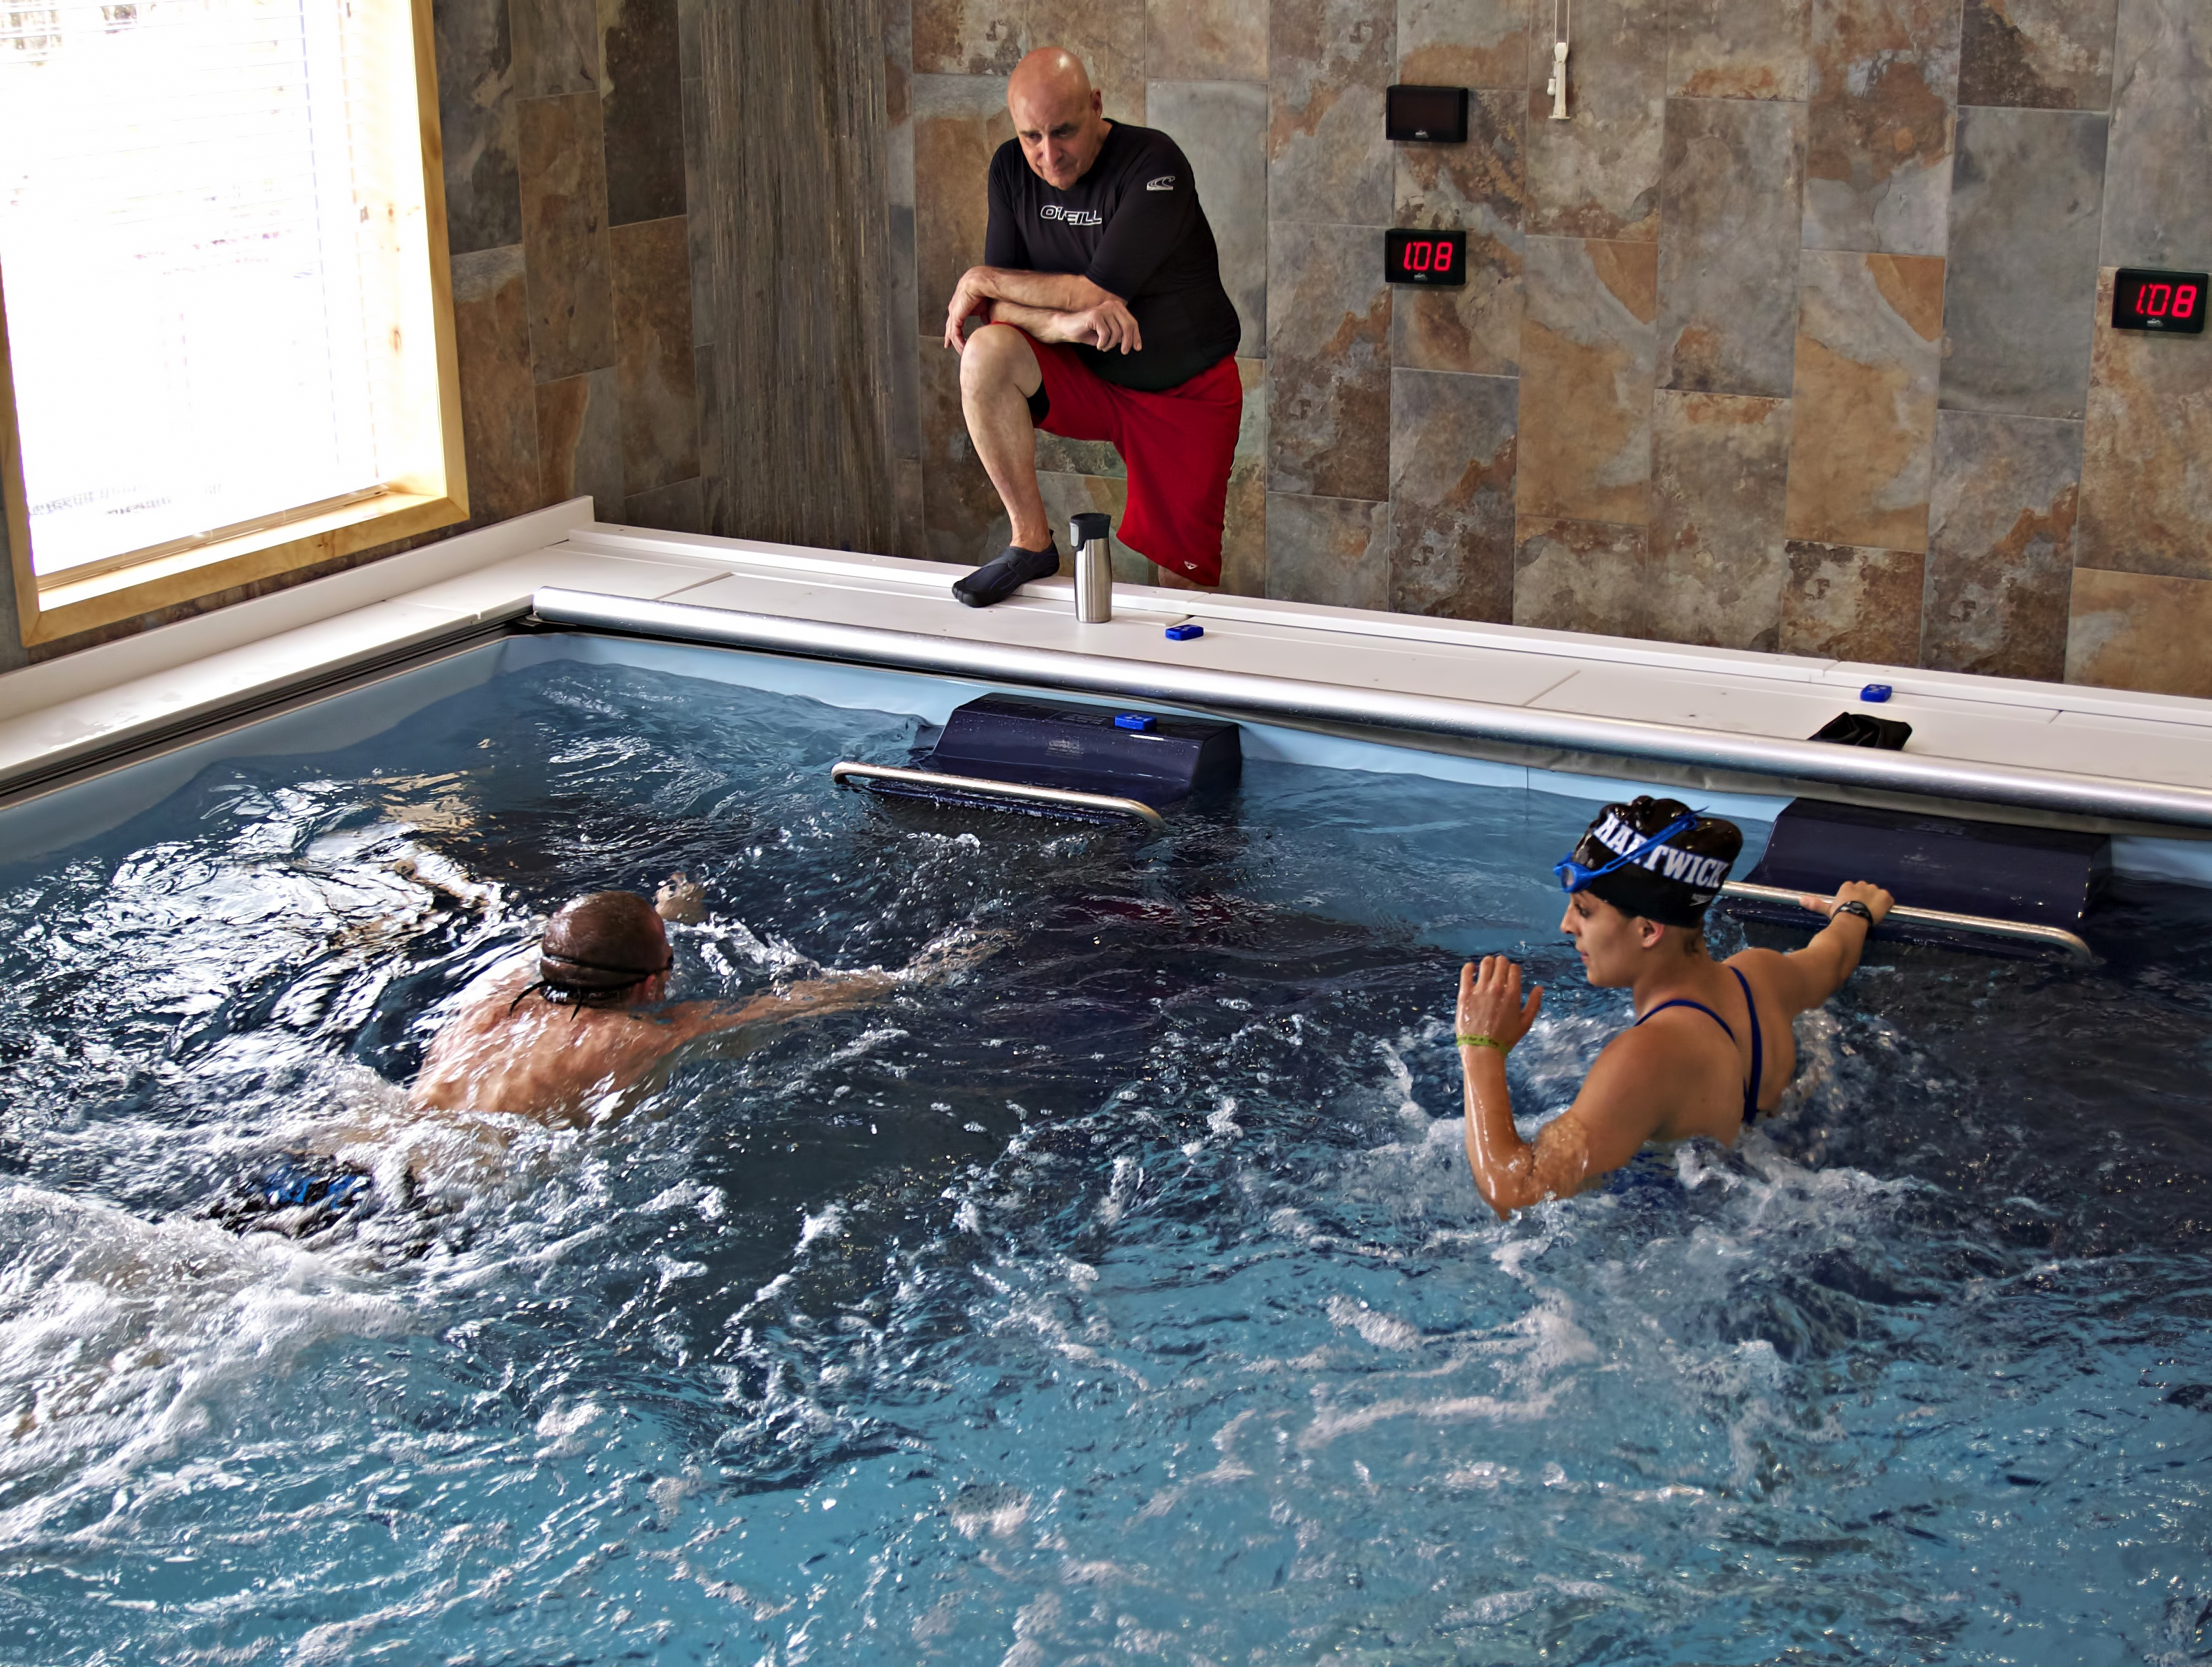 Pike Physical Therapy Offers Fresh Aquatic Exercise